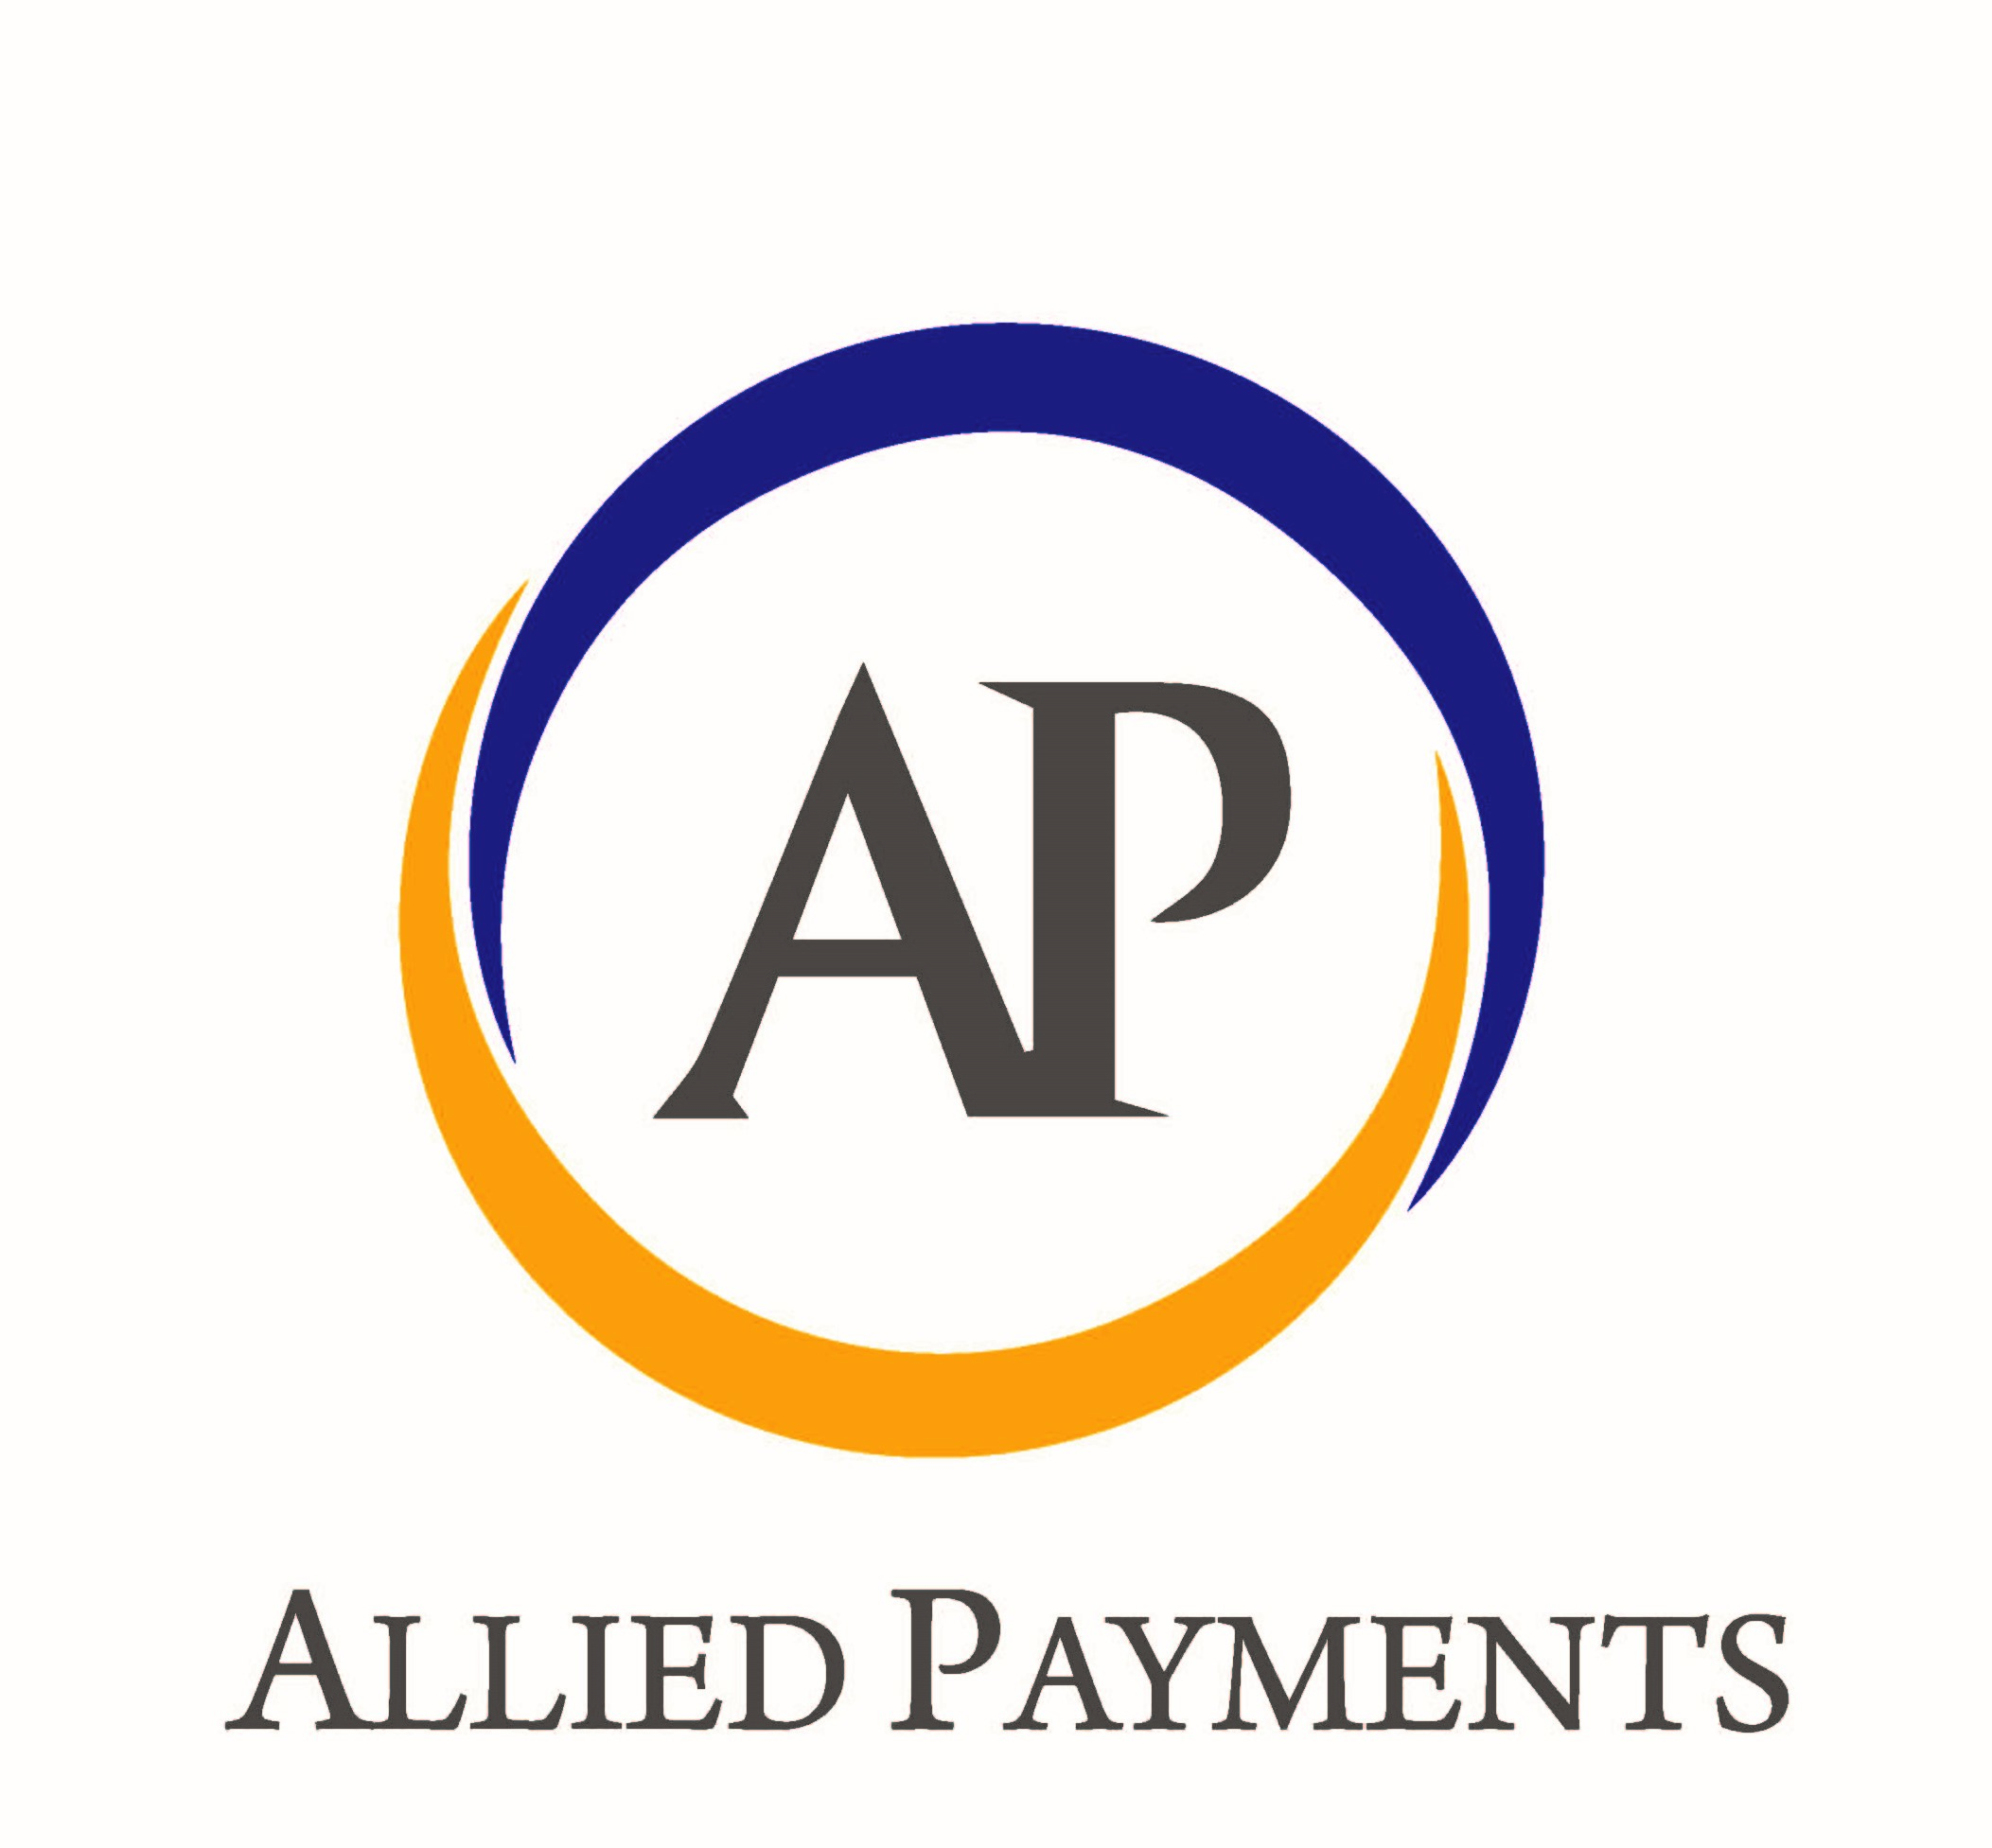 Allied Payments